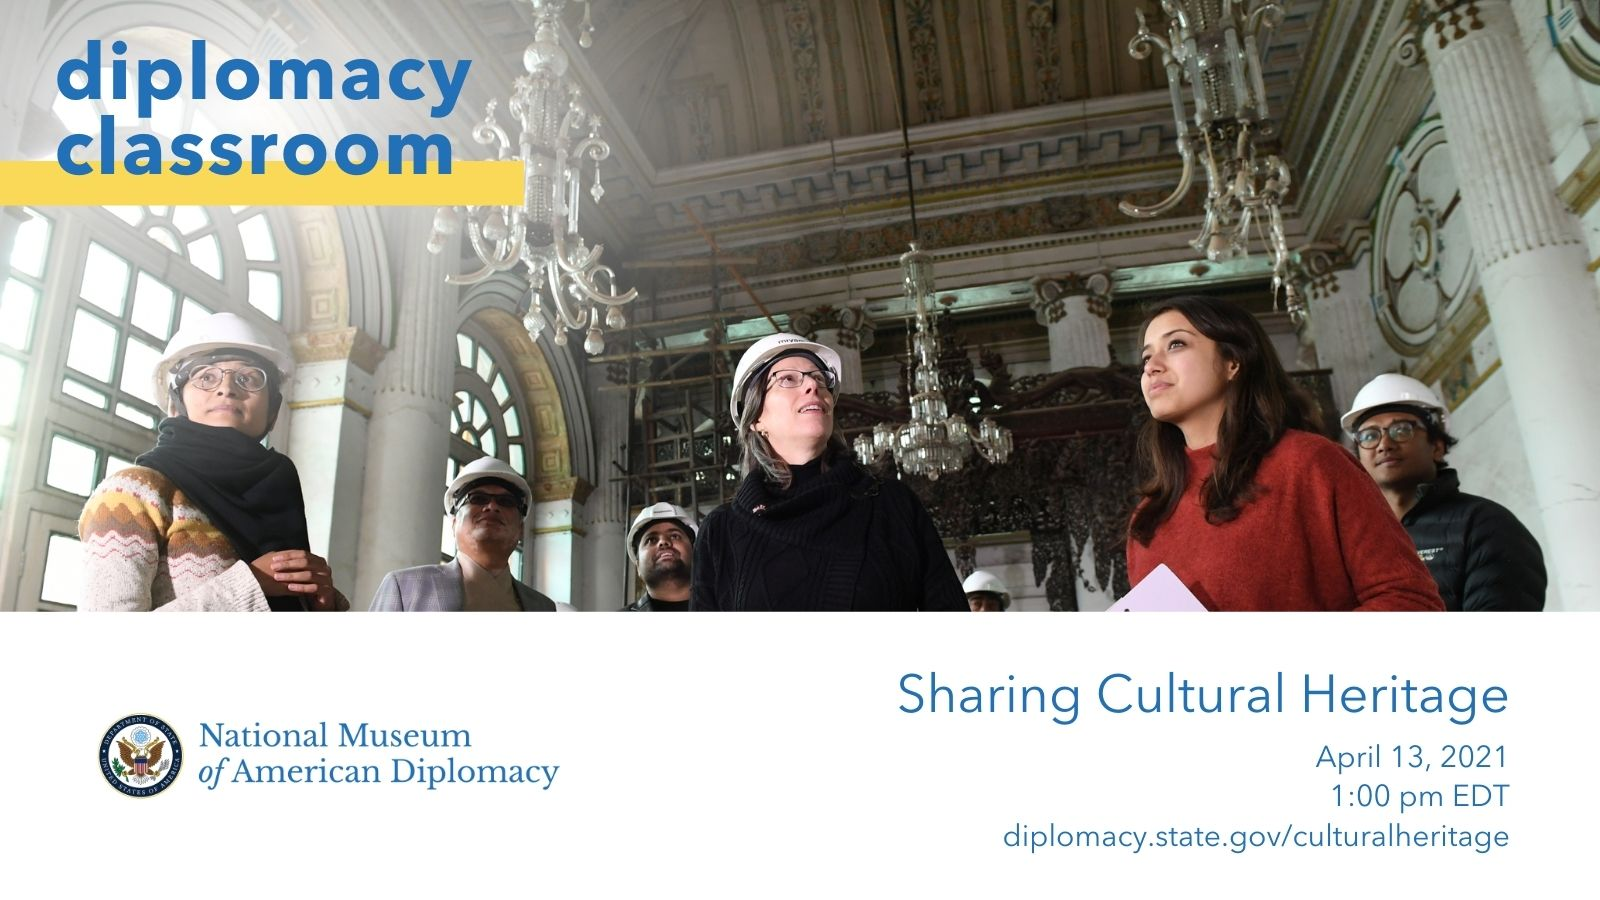 Sharing Cultural Heritage event